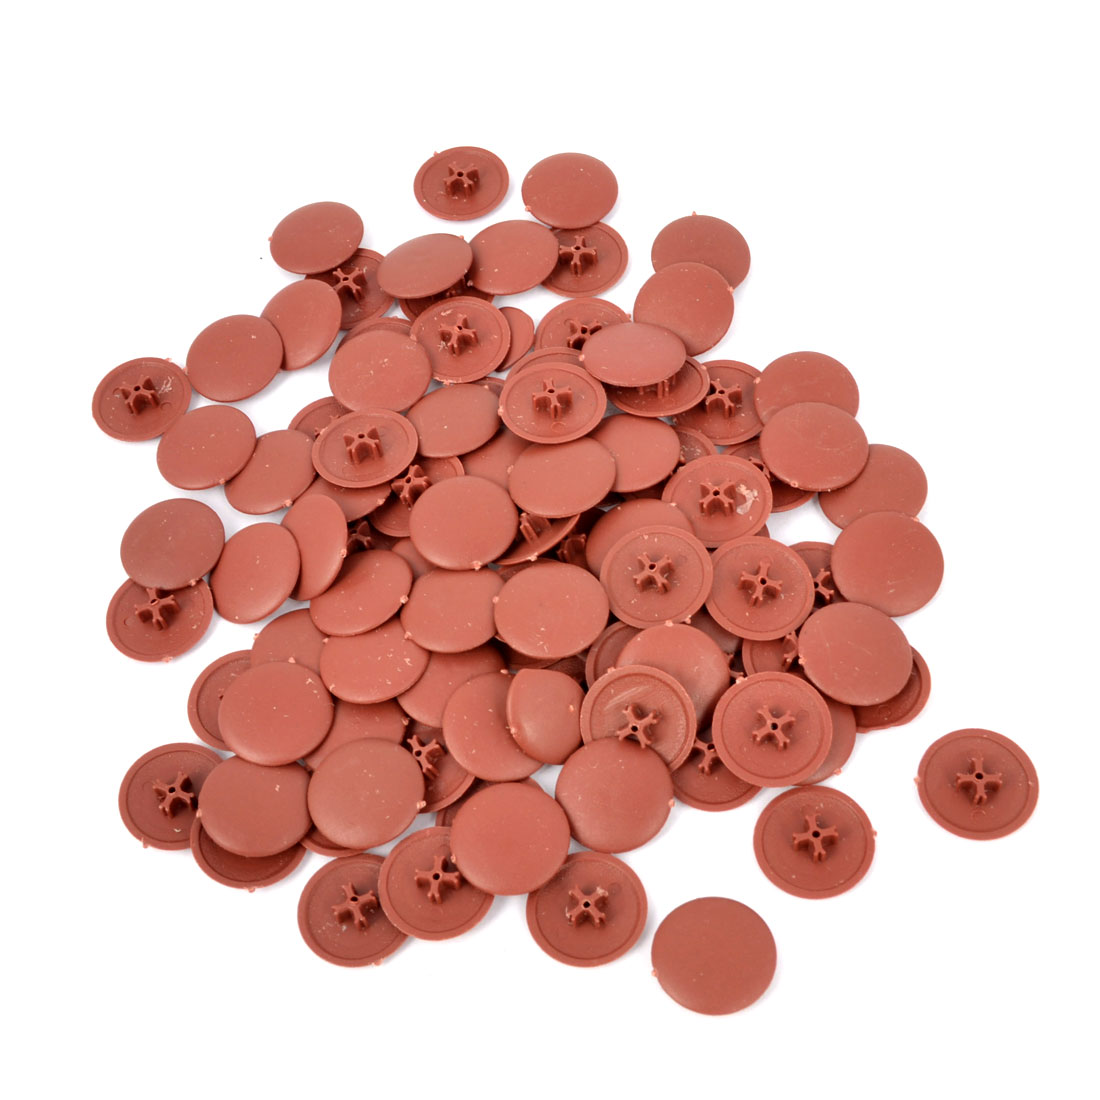 100pcs Press Fit Pozi Phillips Screw Cover Caps Brown